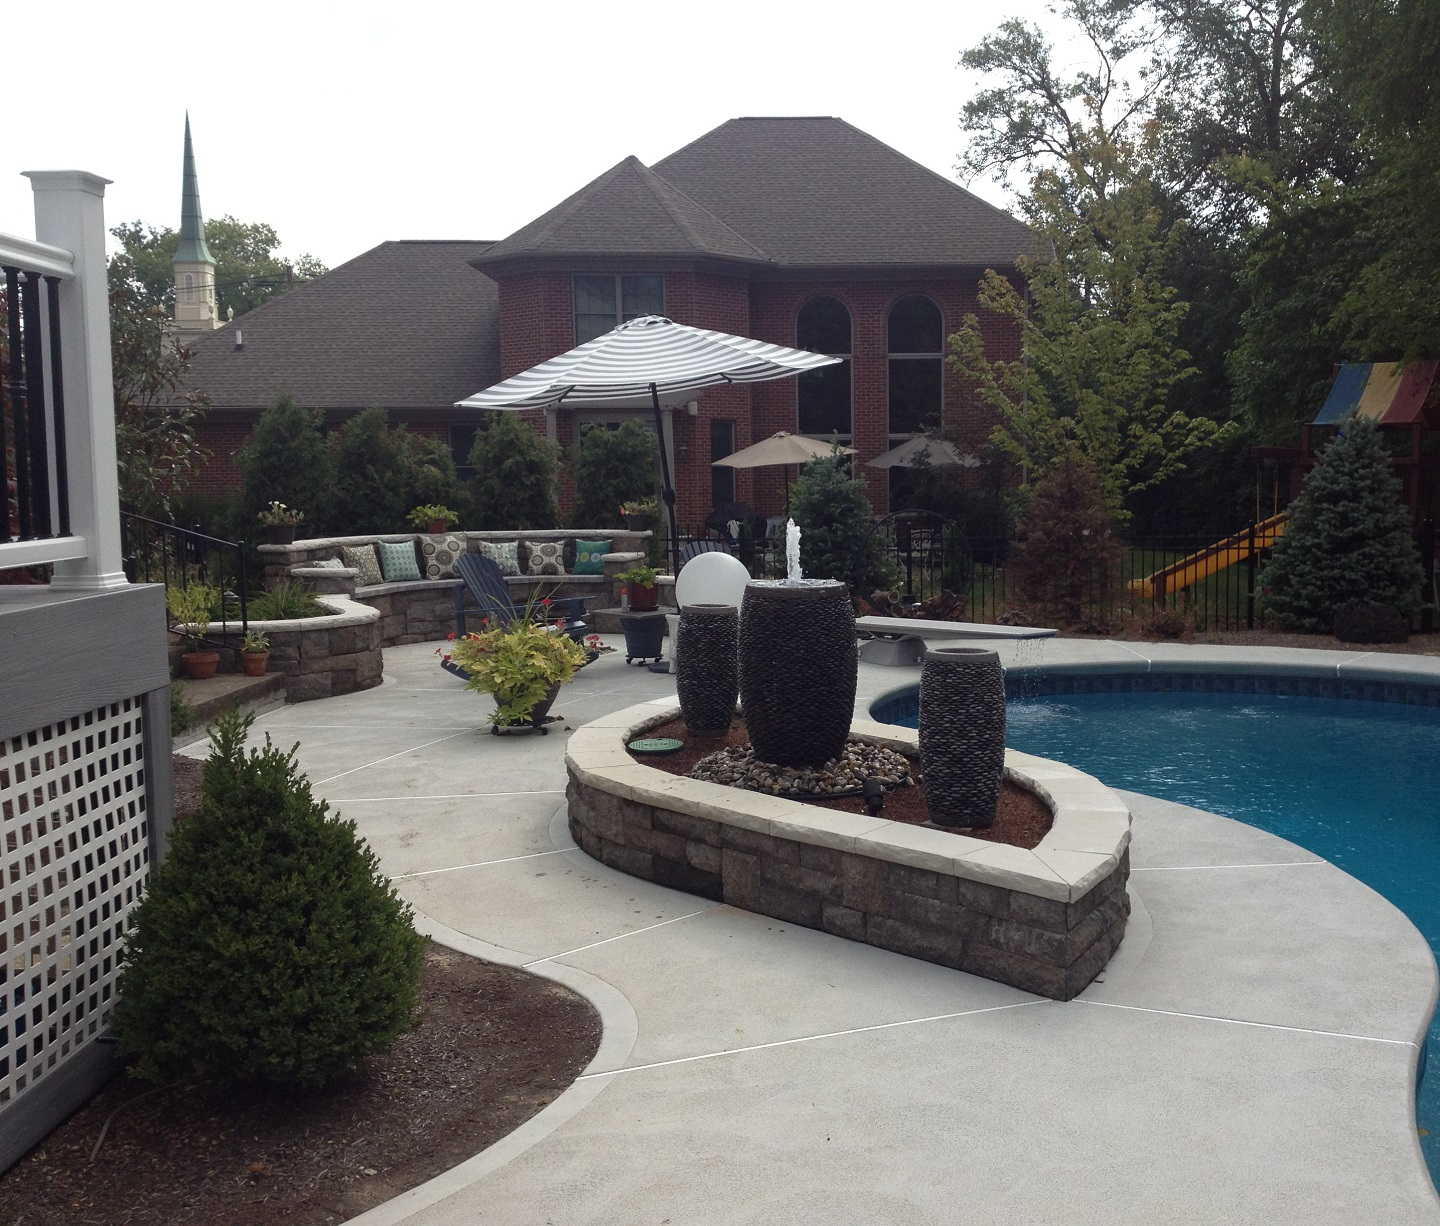 Custom pool patio with water features in West Chester, Ohio